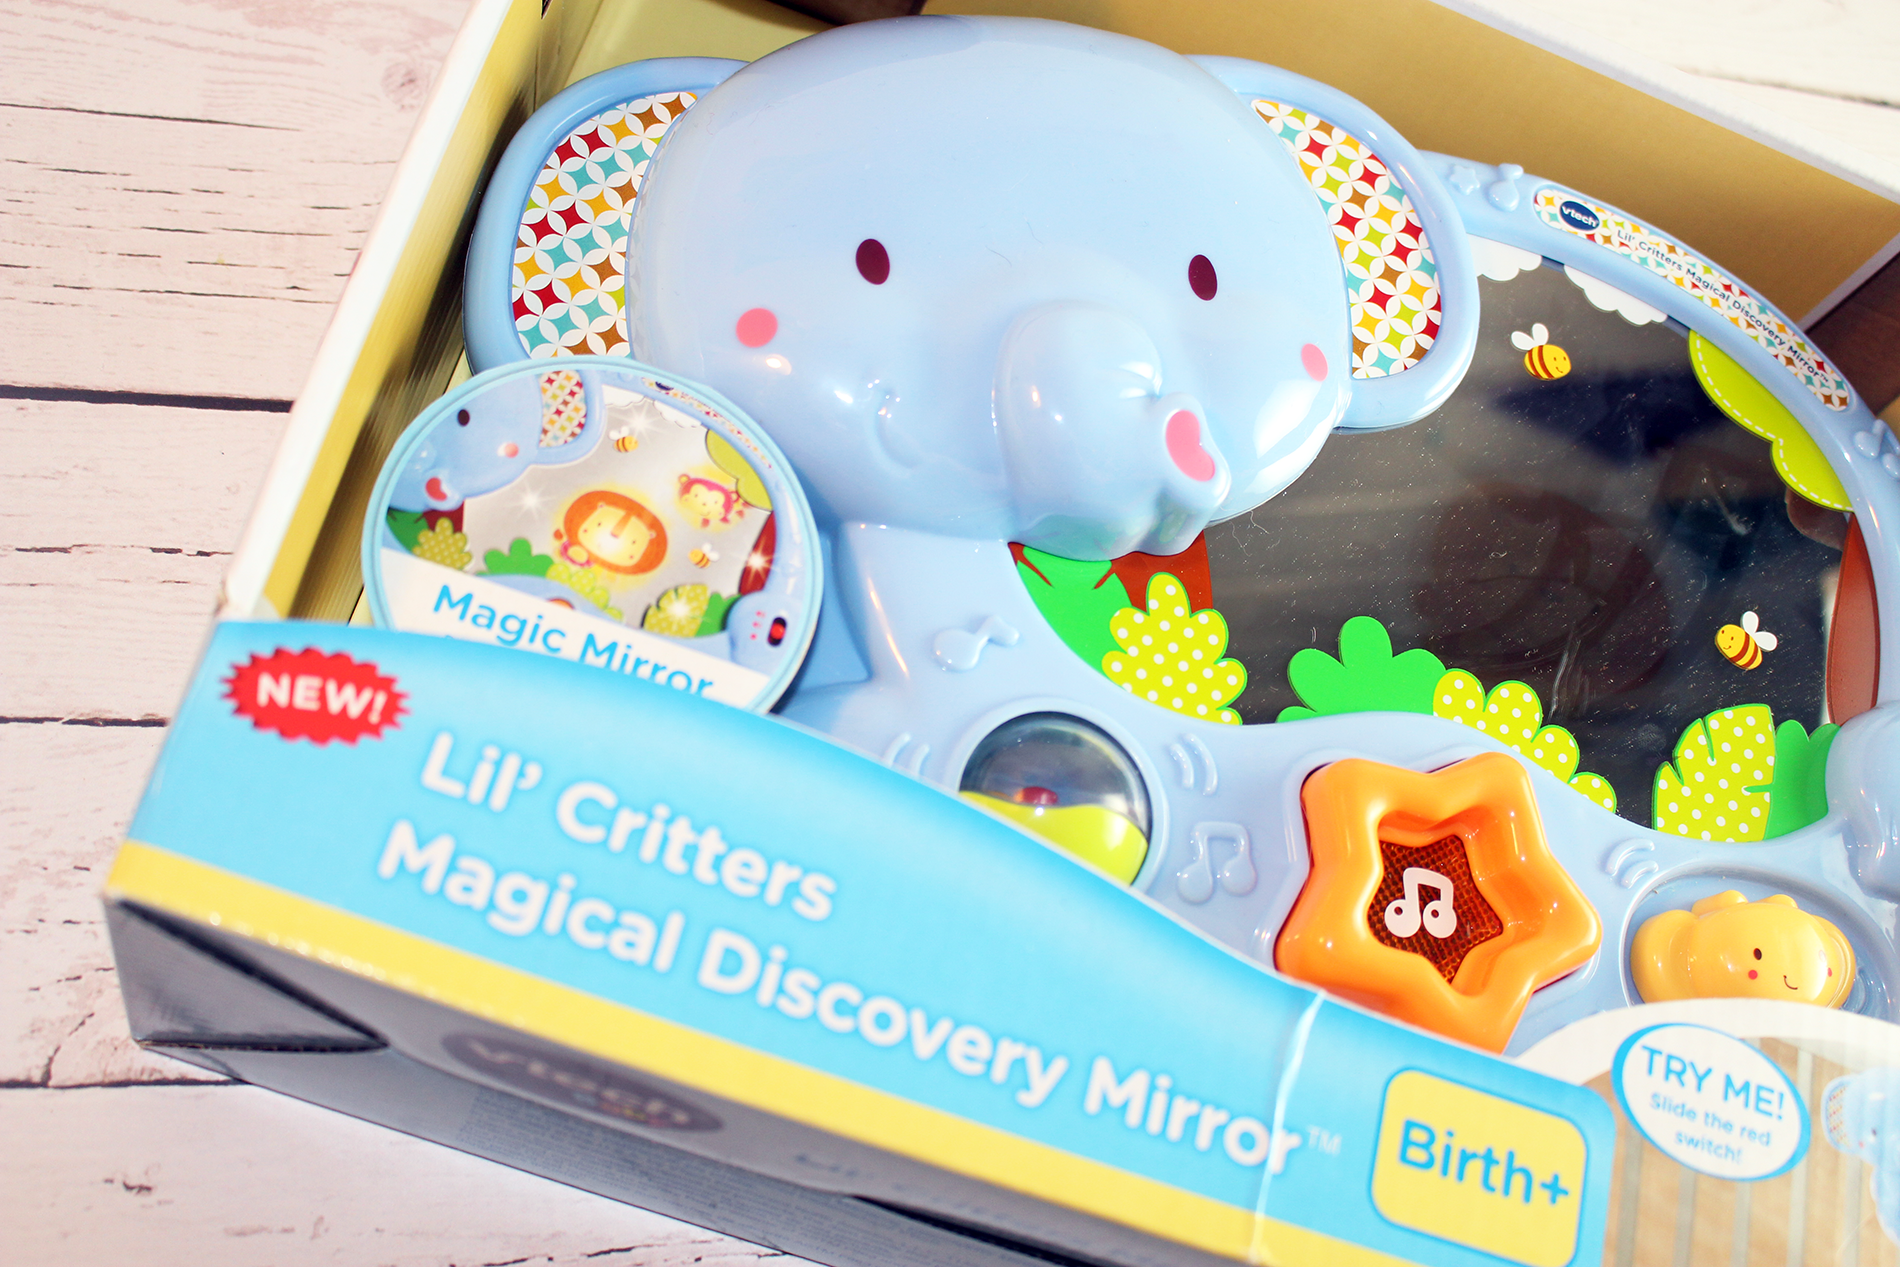 Lil' Critters Magical Discovery Mirror from VTech